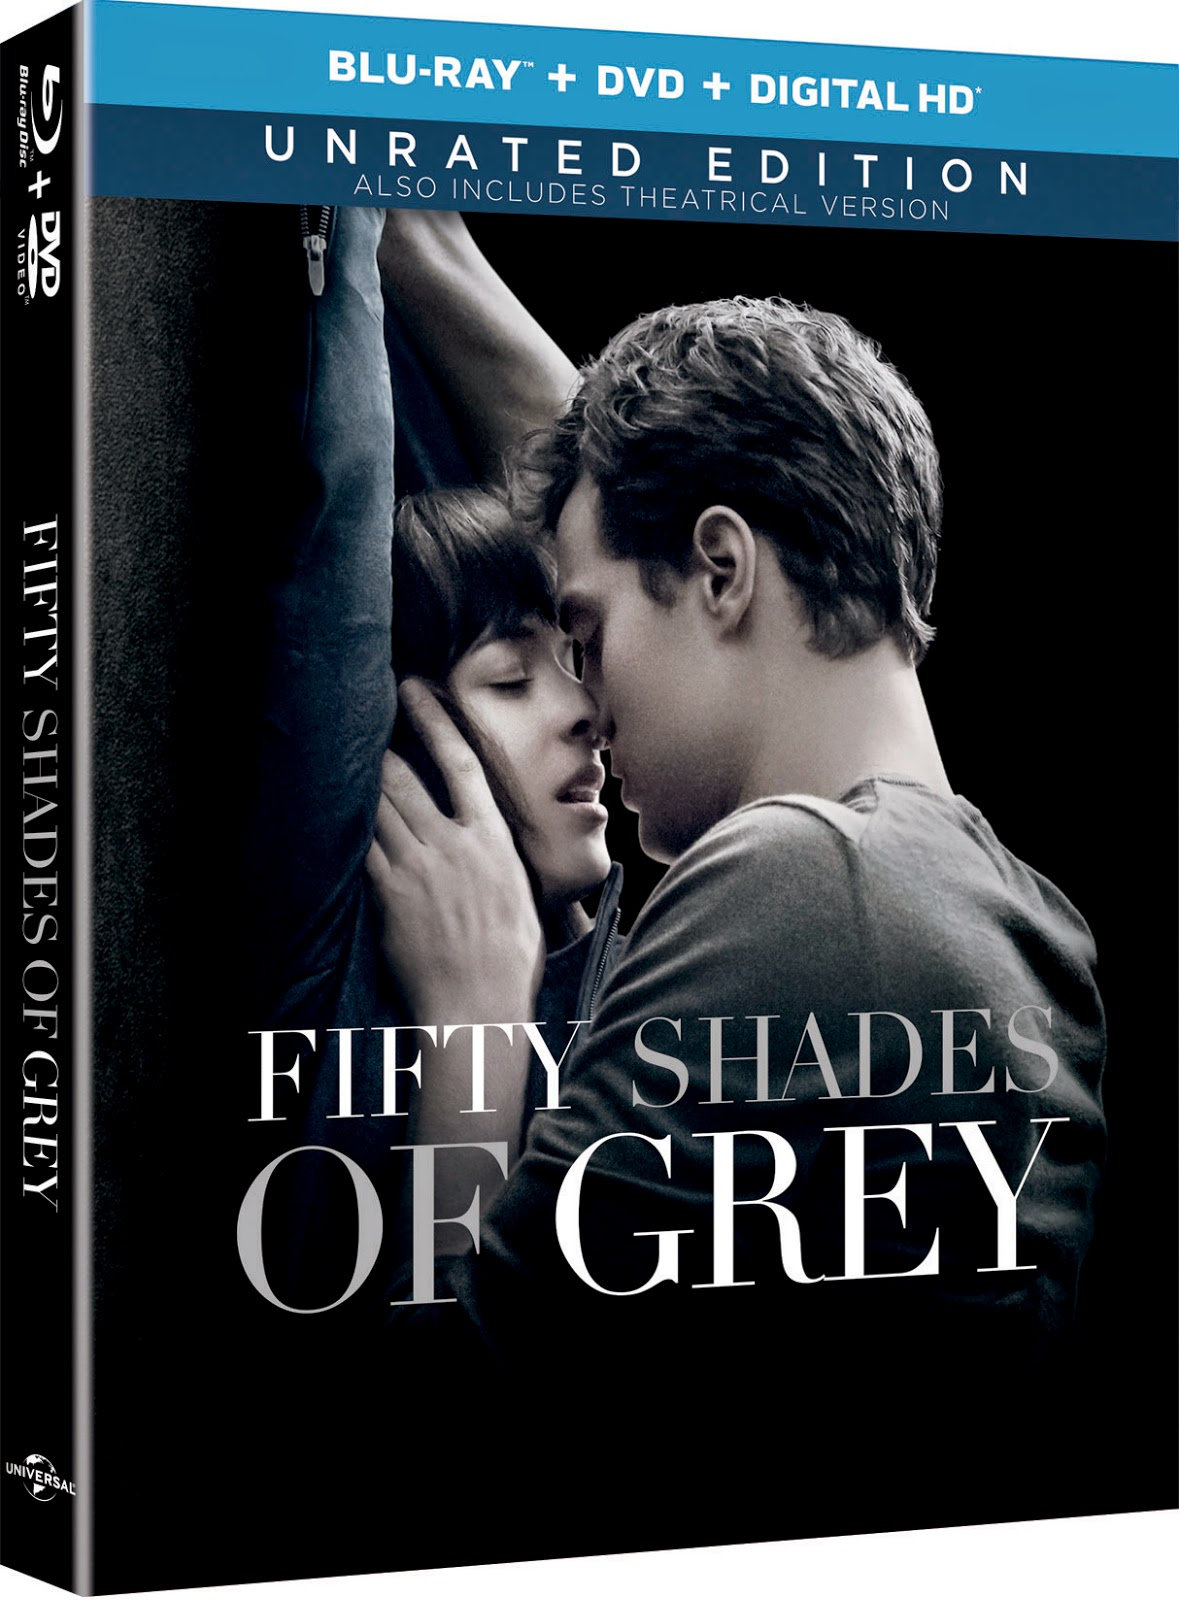 Fifty shades film 39 s bring home mr grey giveaway for Fifty shades of grey movie online youtube